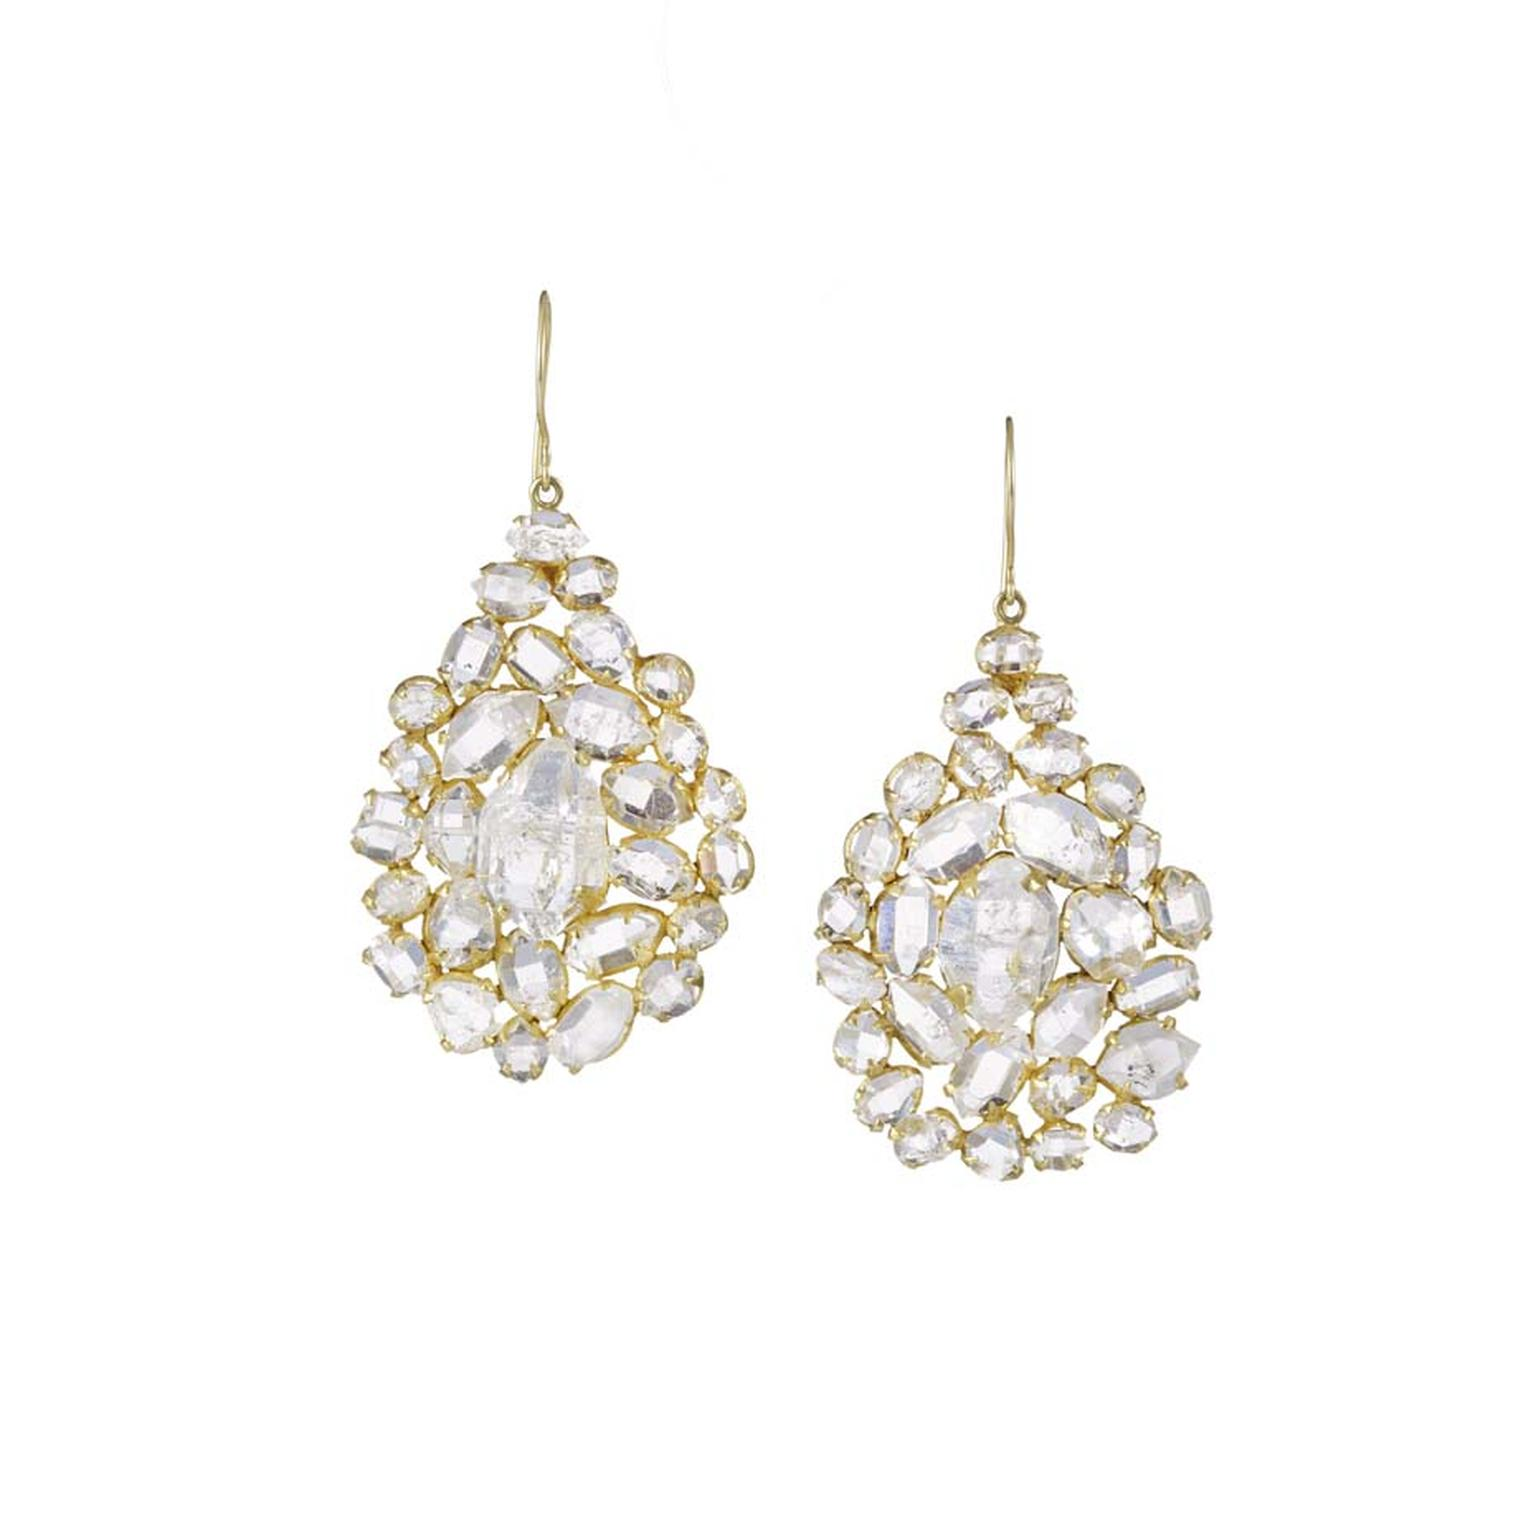 Invisible Set collection diamond earrings by Pippa Small